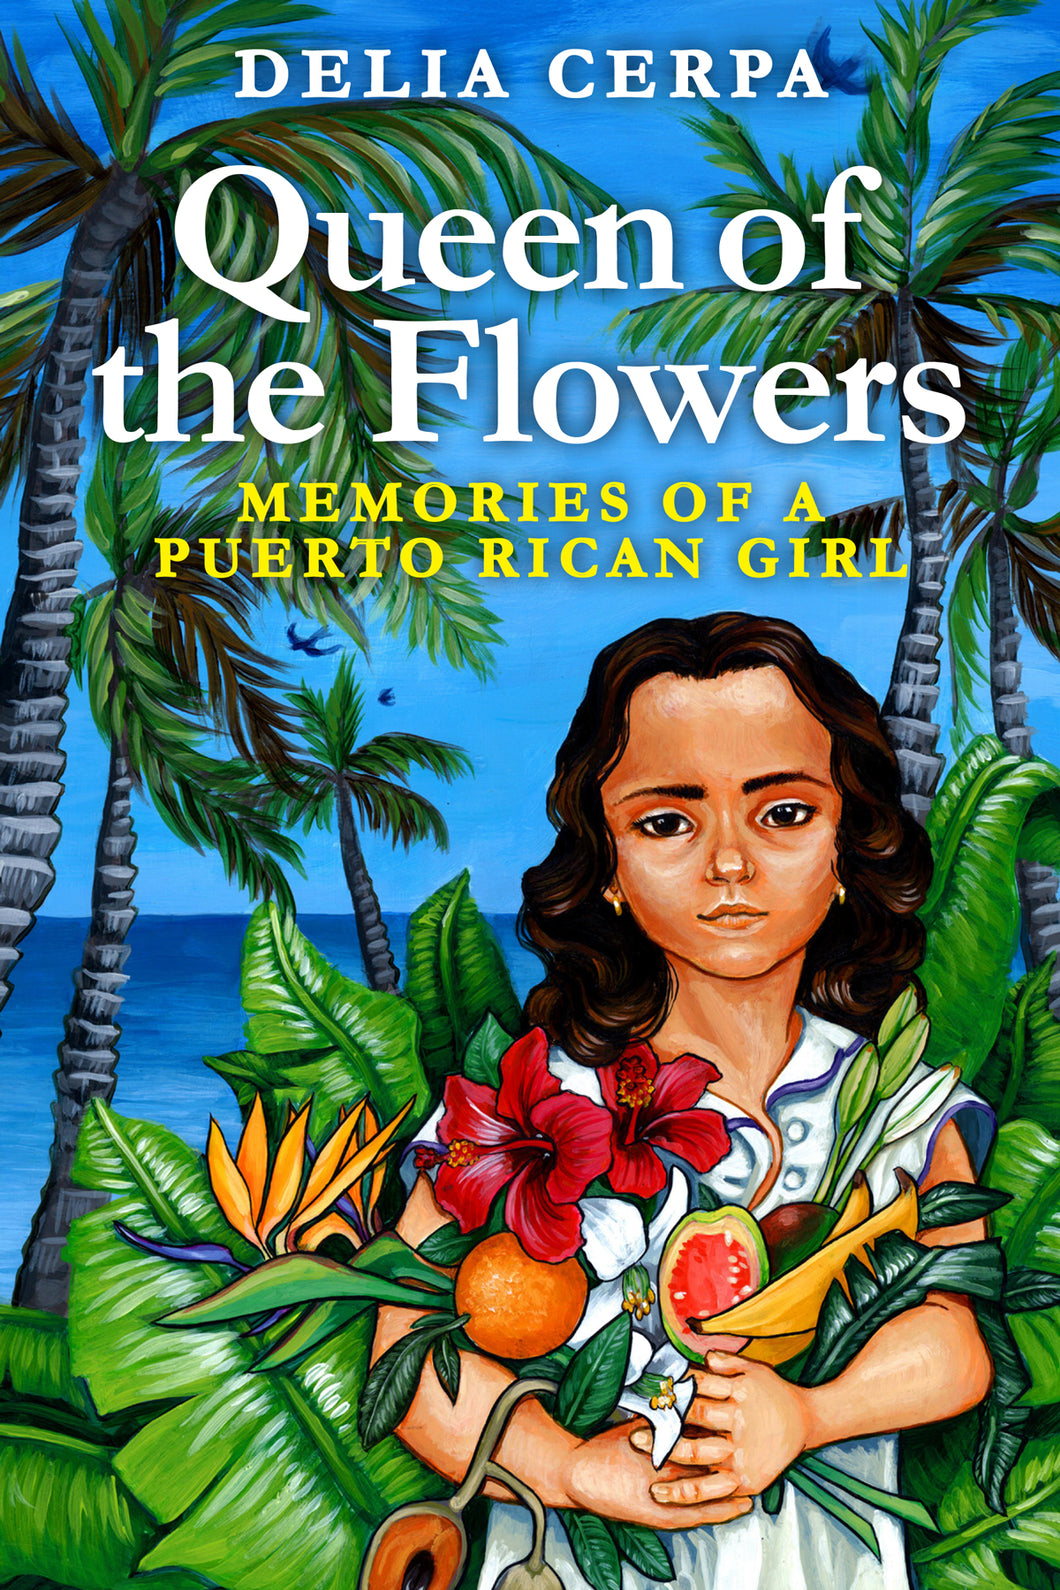 Queen of the Flowers - Memories of a Puerto Rican Girl